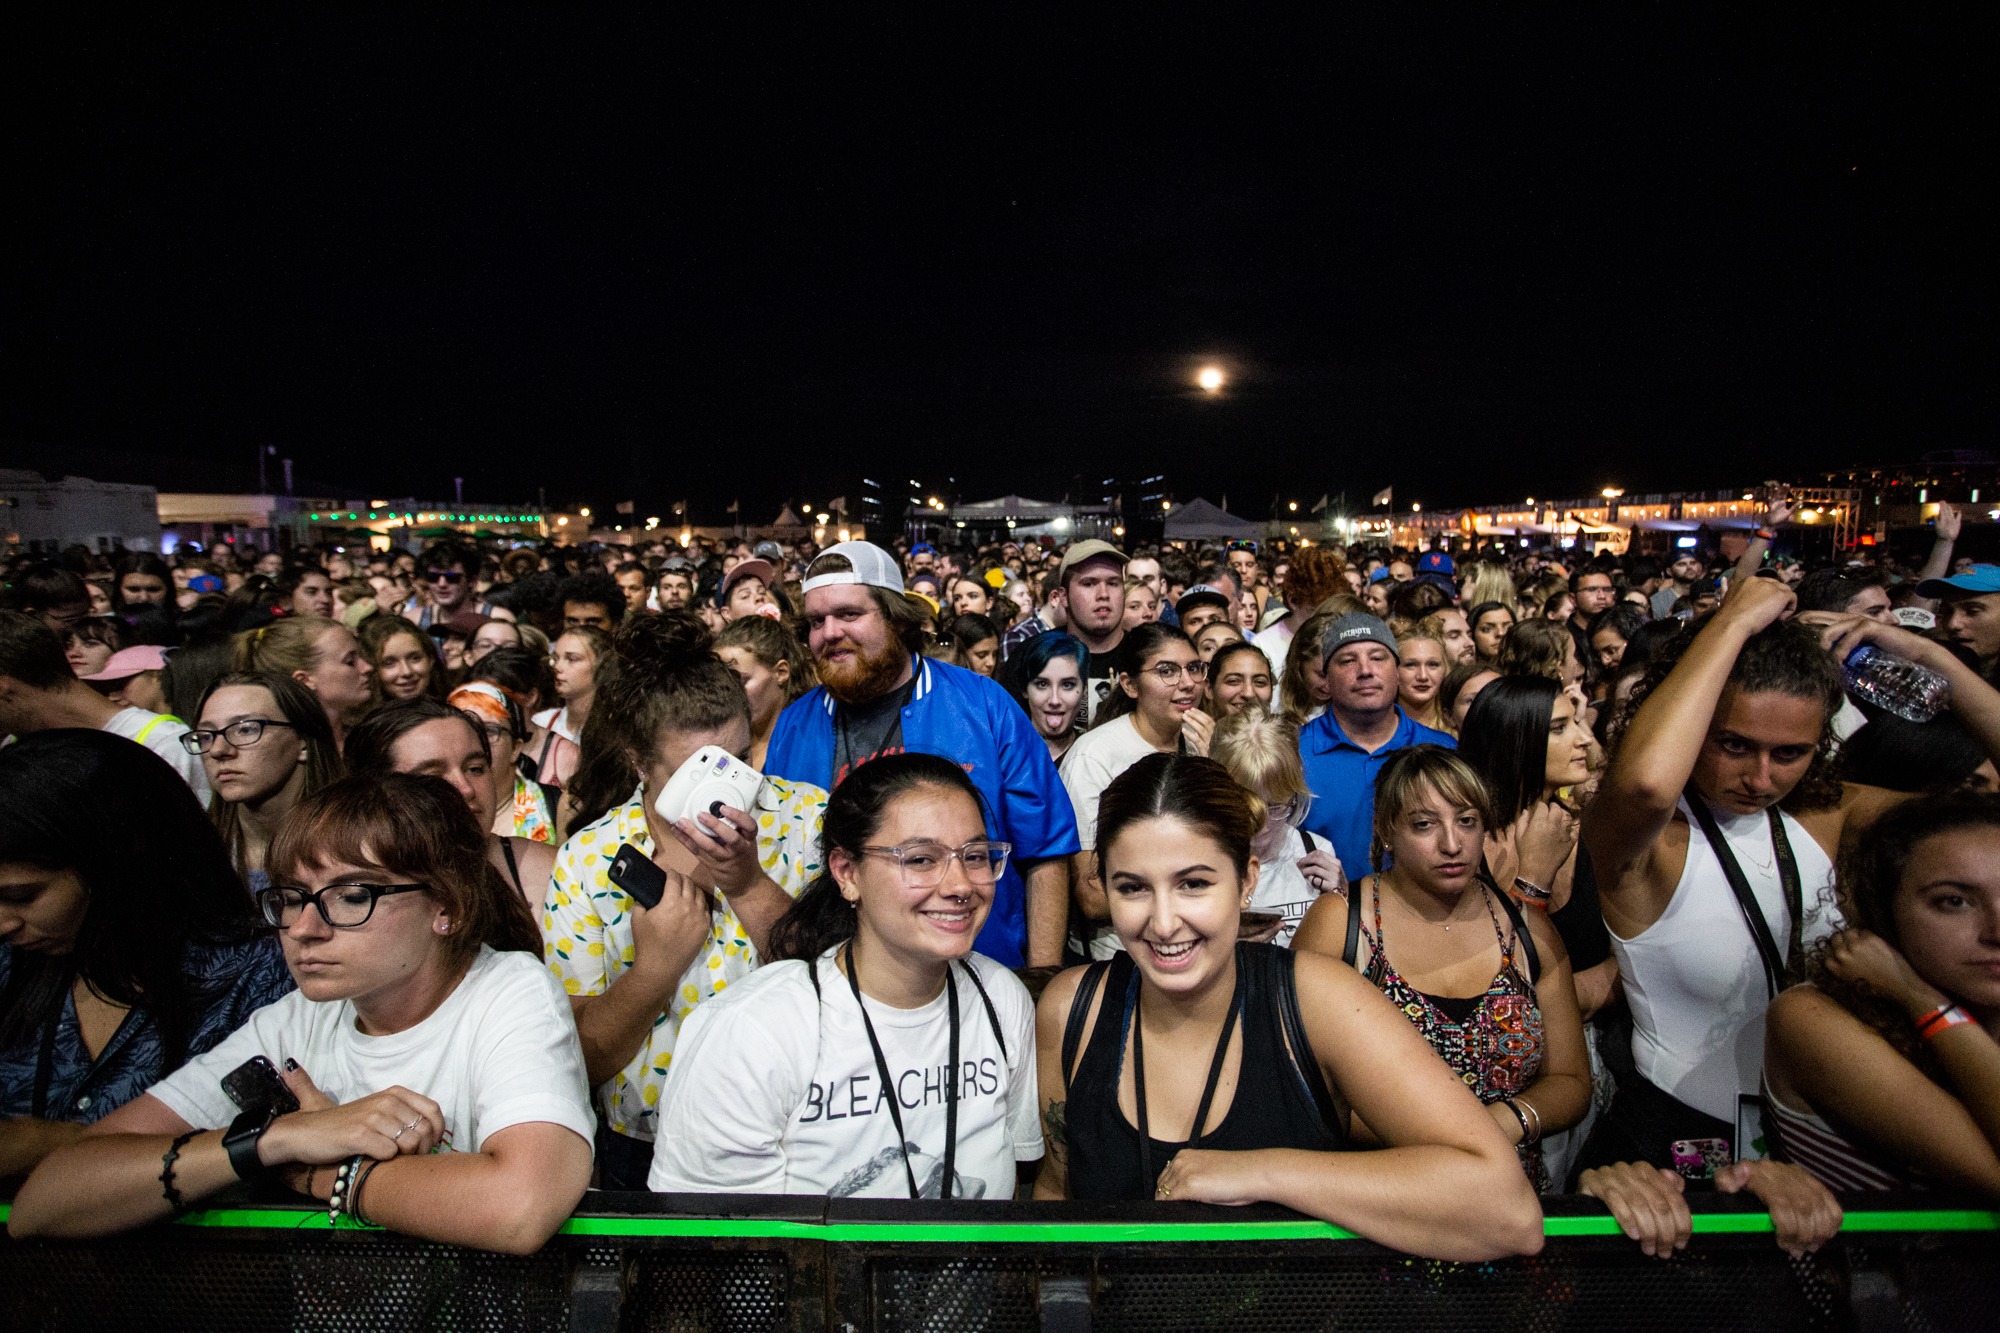 Gillian Carannante (left) and Ava Manganiello (right) wait front and center for Bleachers to perform at Shadow of the City festival in Asbury Park, NJ on August 25, 2018.